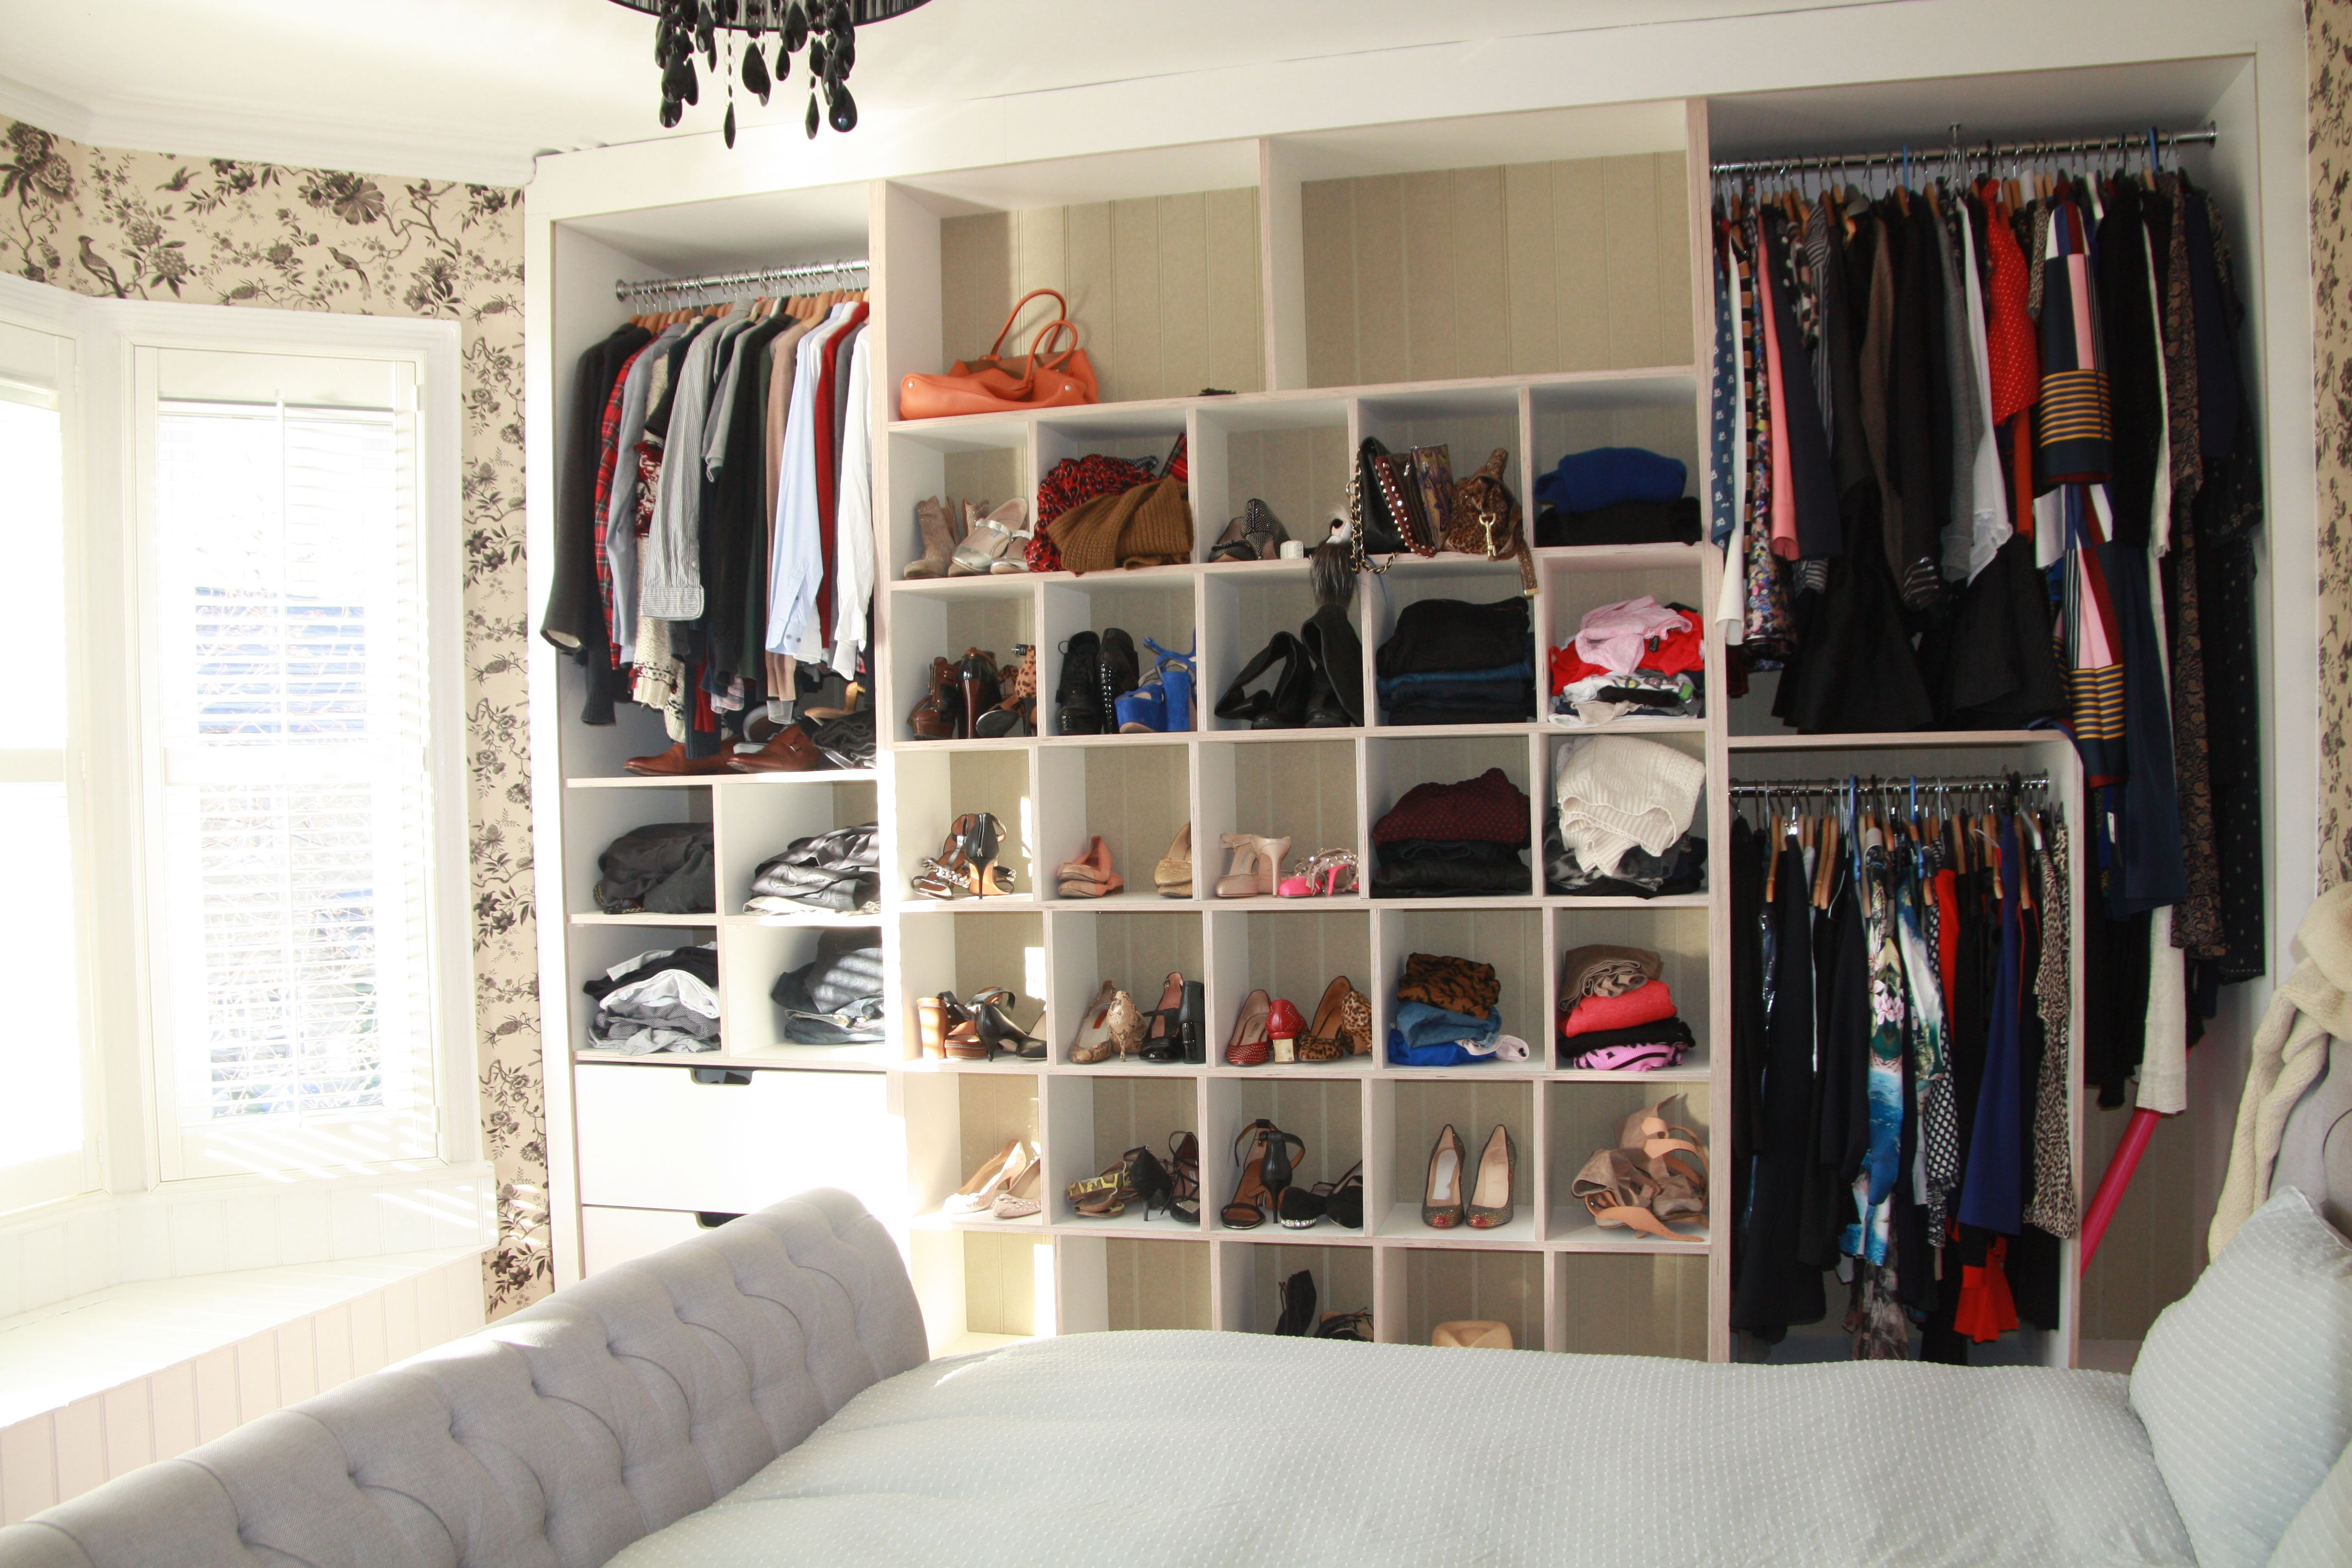 A twist to the normal bedroom wardrobe!!  Cool cupboard designed around the space to create an 'at a glance' open wardrobe with funky cubes for shoes and handbags!